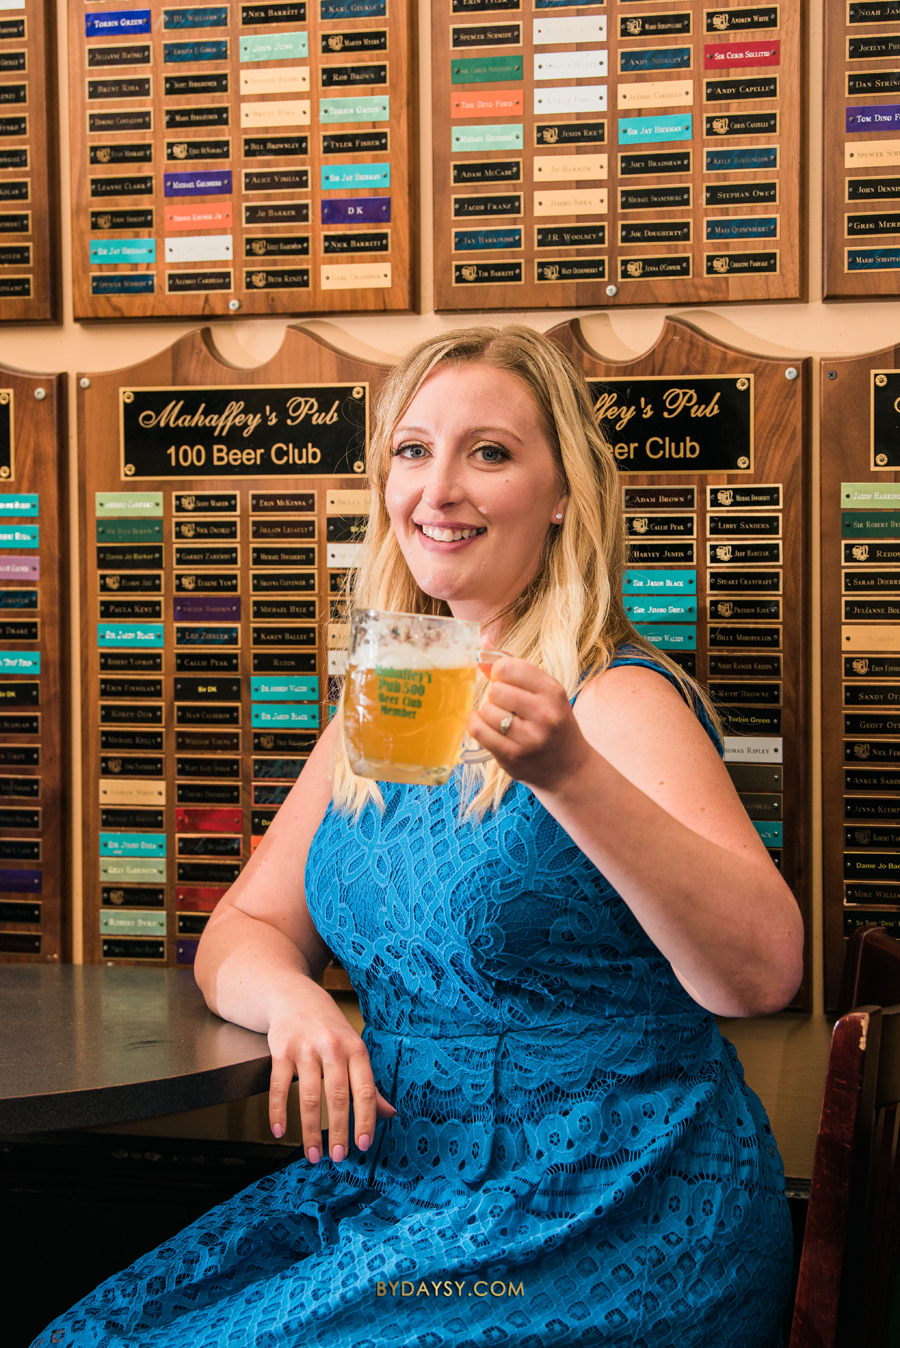 bride to be holding beer mug